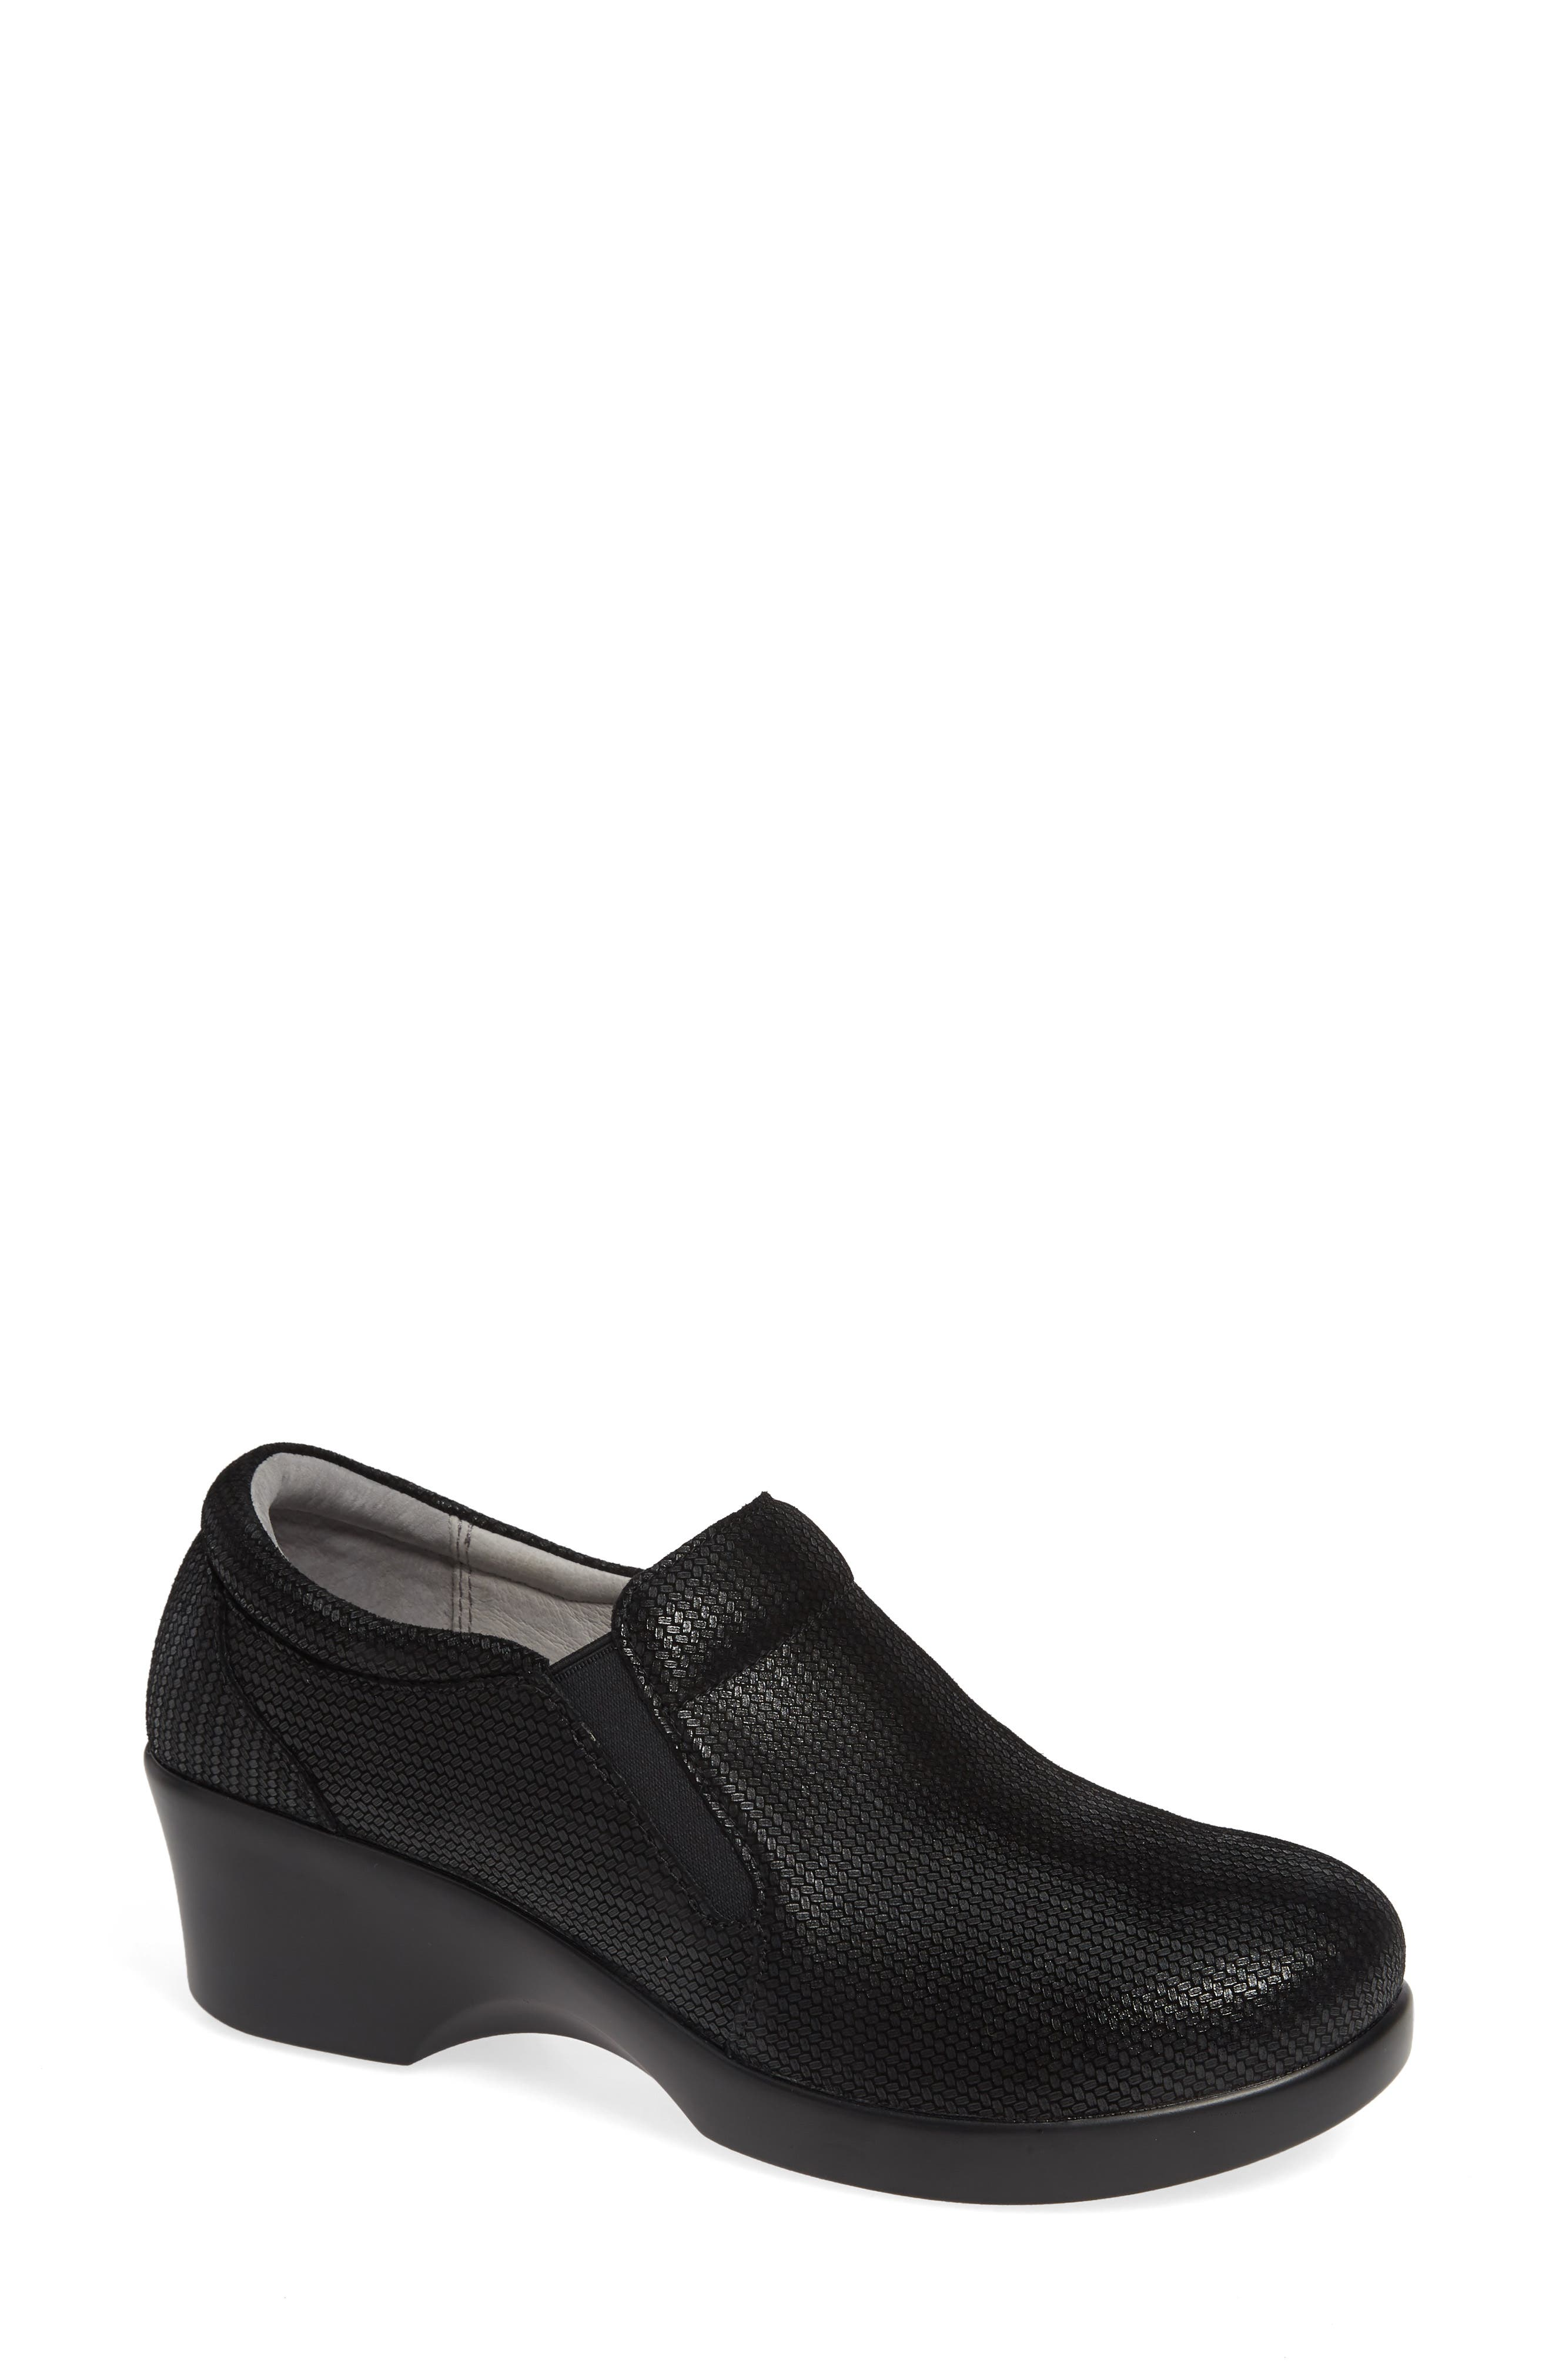 Eryn Pump,                         Main,                         color, BOB AND WEAVE LEATHER